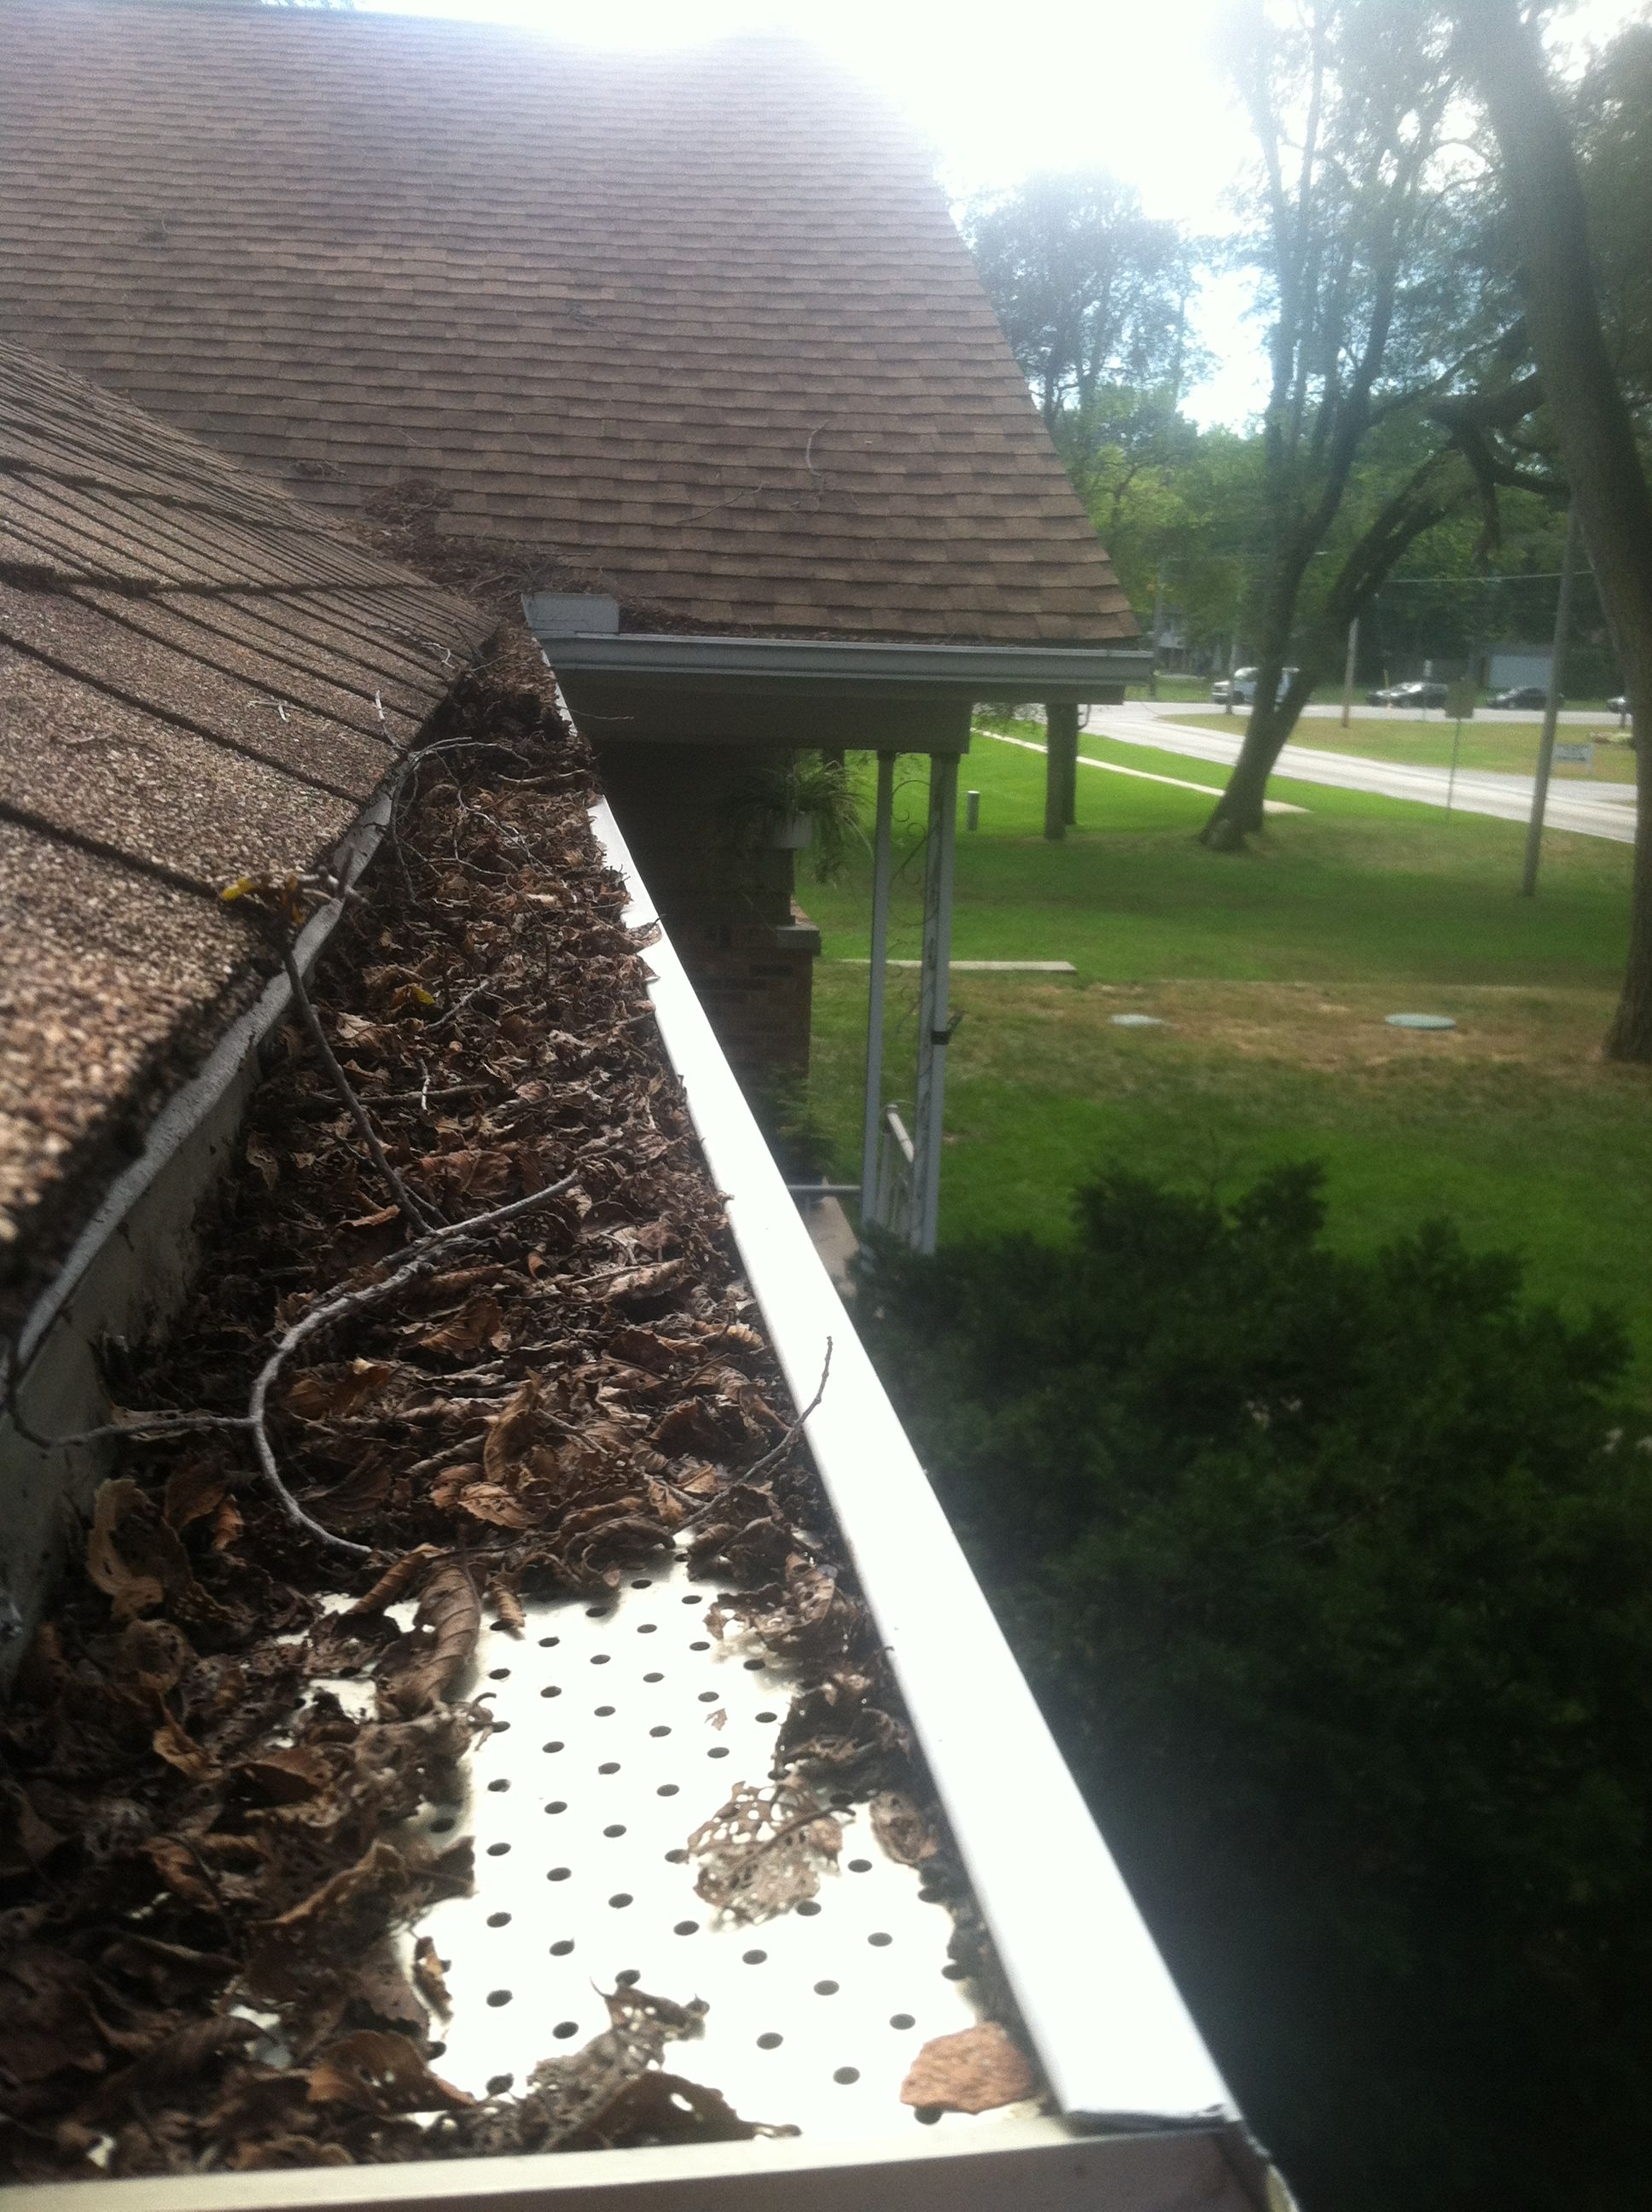 Leaf Relief We Wiped Away Debris So You Can Clearly See The Gutter Guard Beneath Fail Get The Best Gutter Gutter Guard Gutter Protection Cleaning Gutters